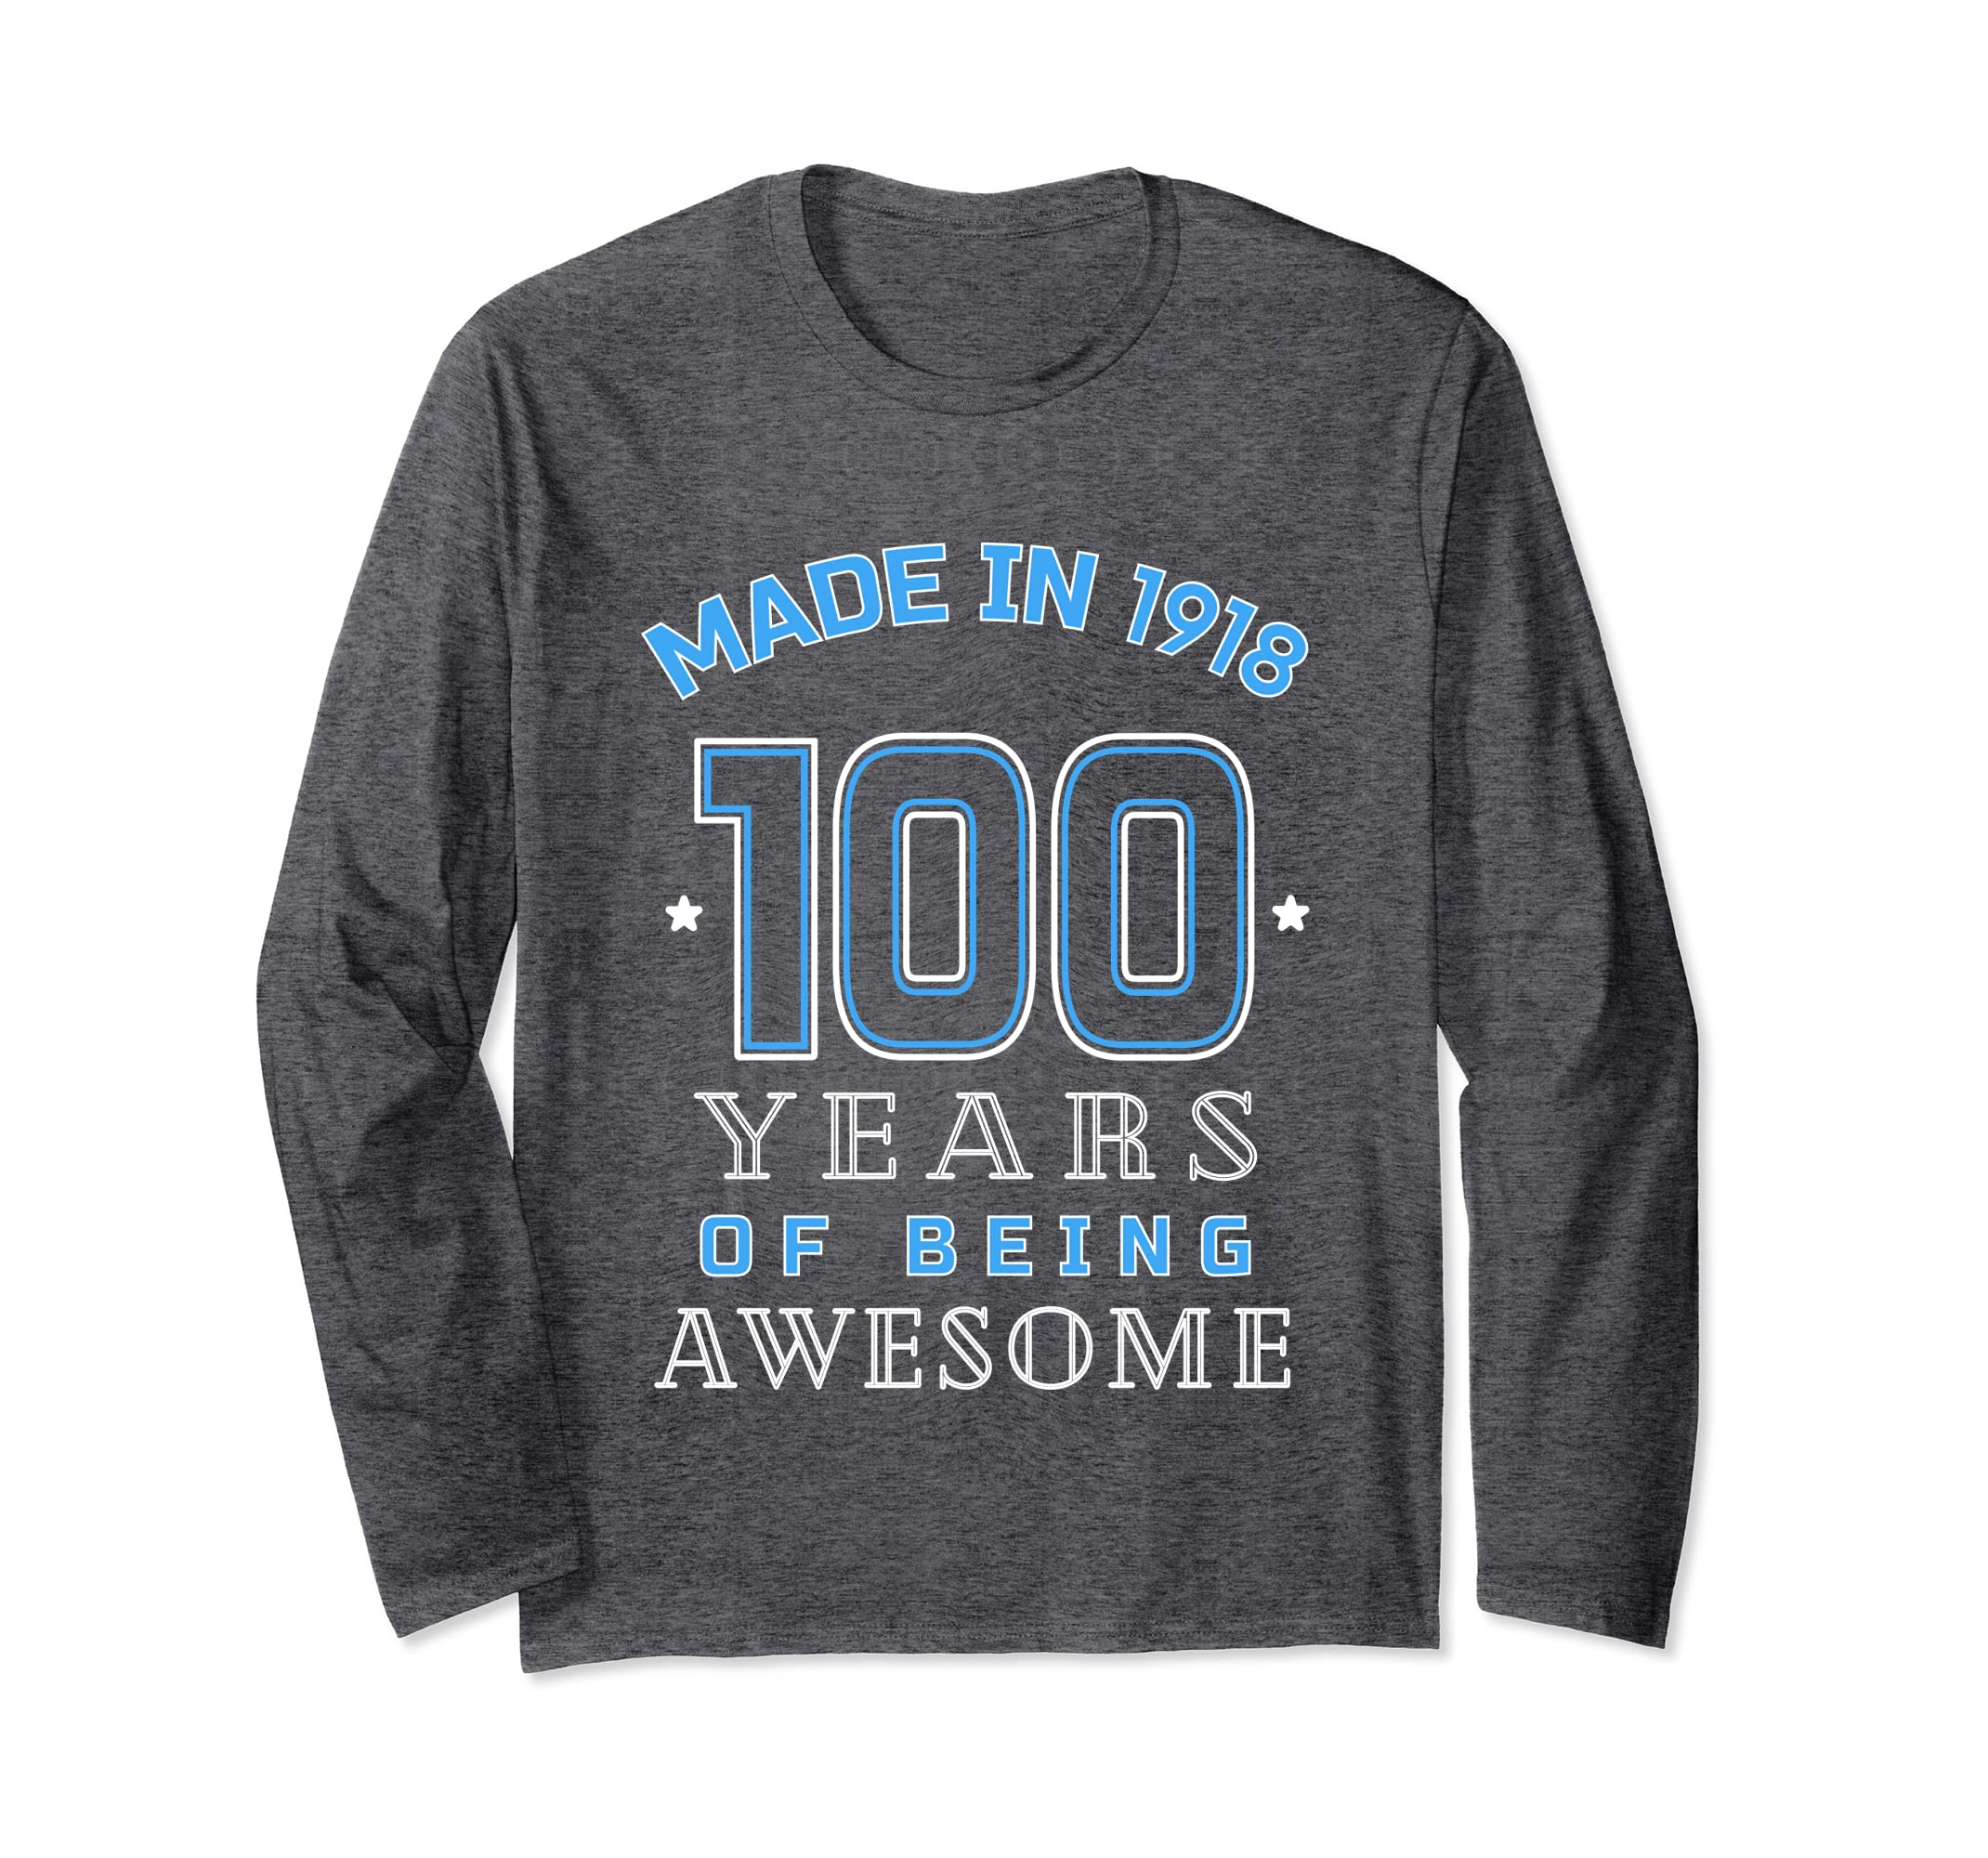 Made In 1918 Years of Awesome LongSleeve 100h Birthday Gift-mt